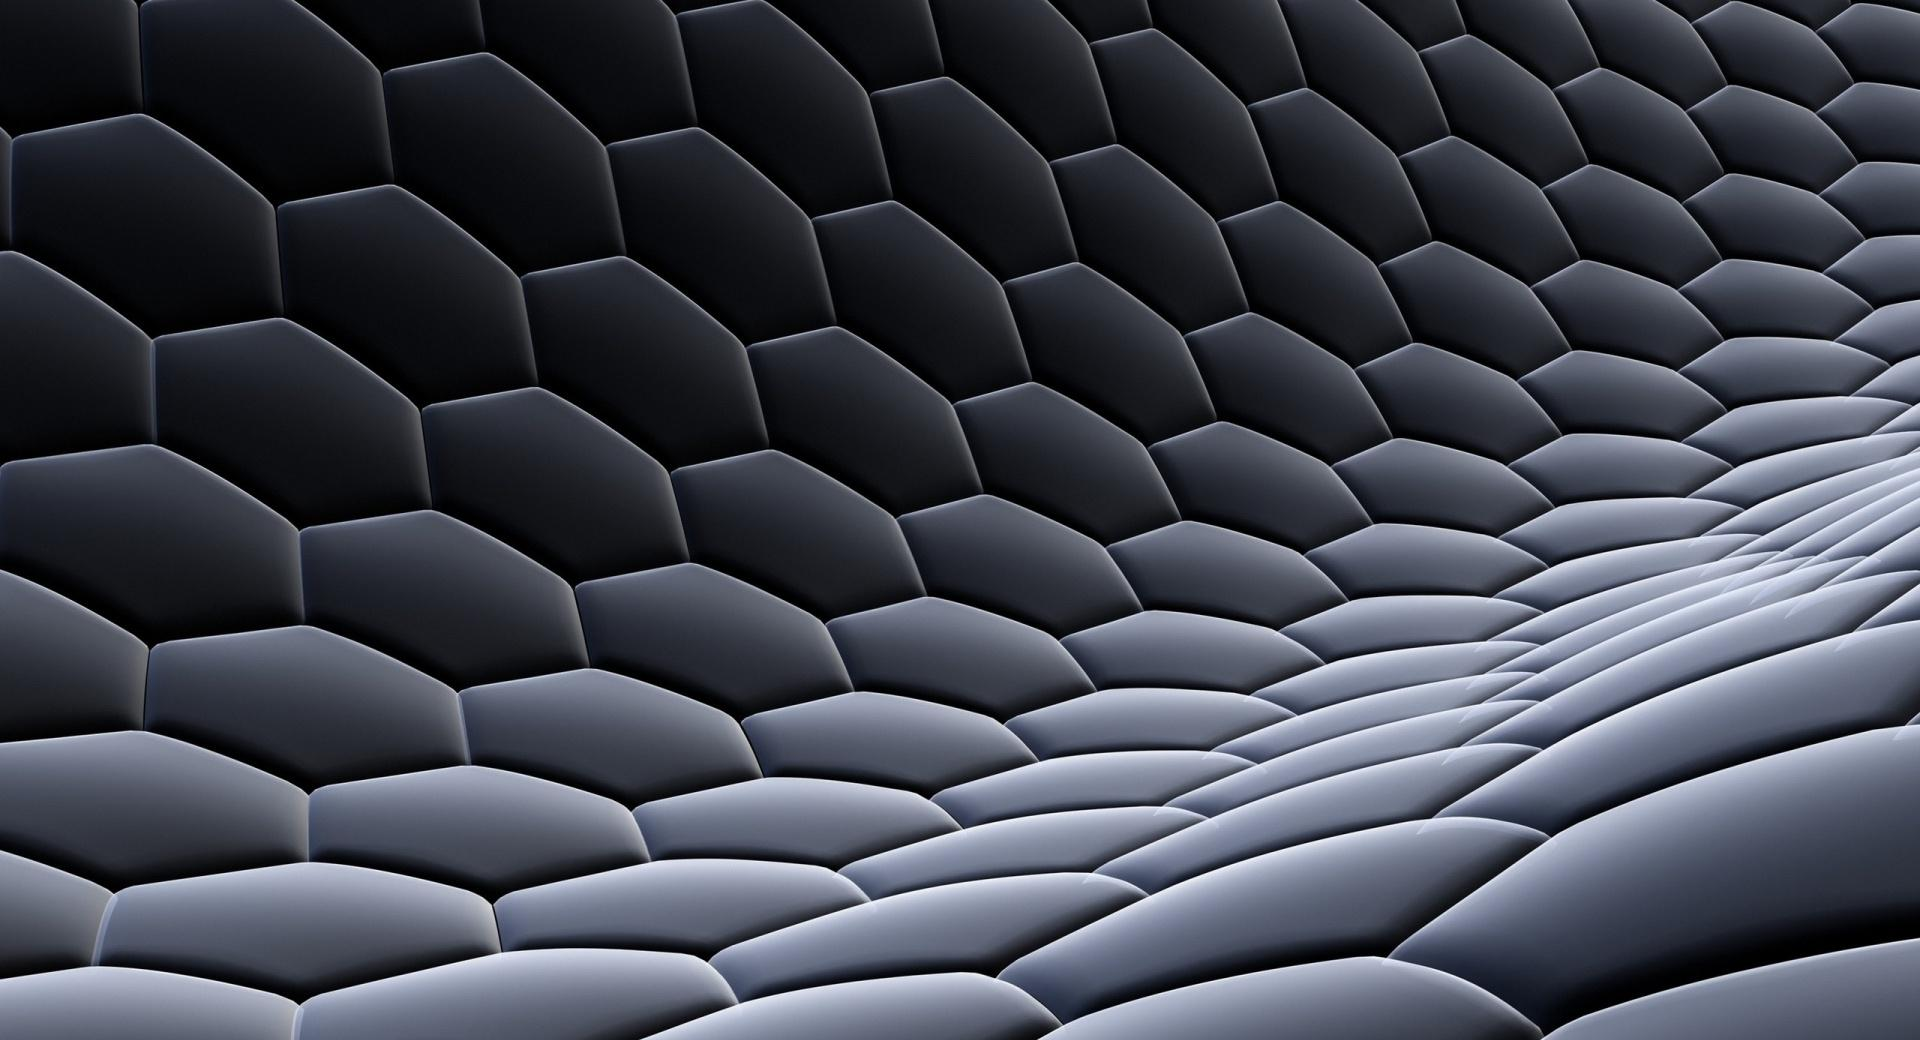 Hexagons wallpapers HD quality